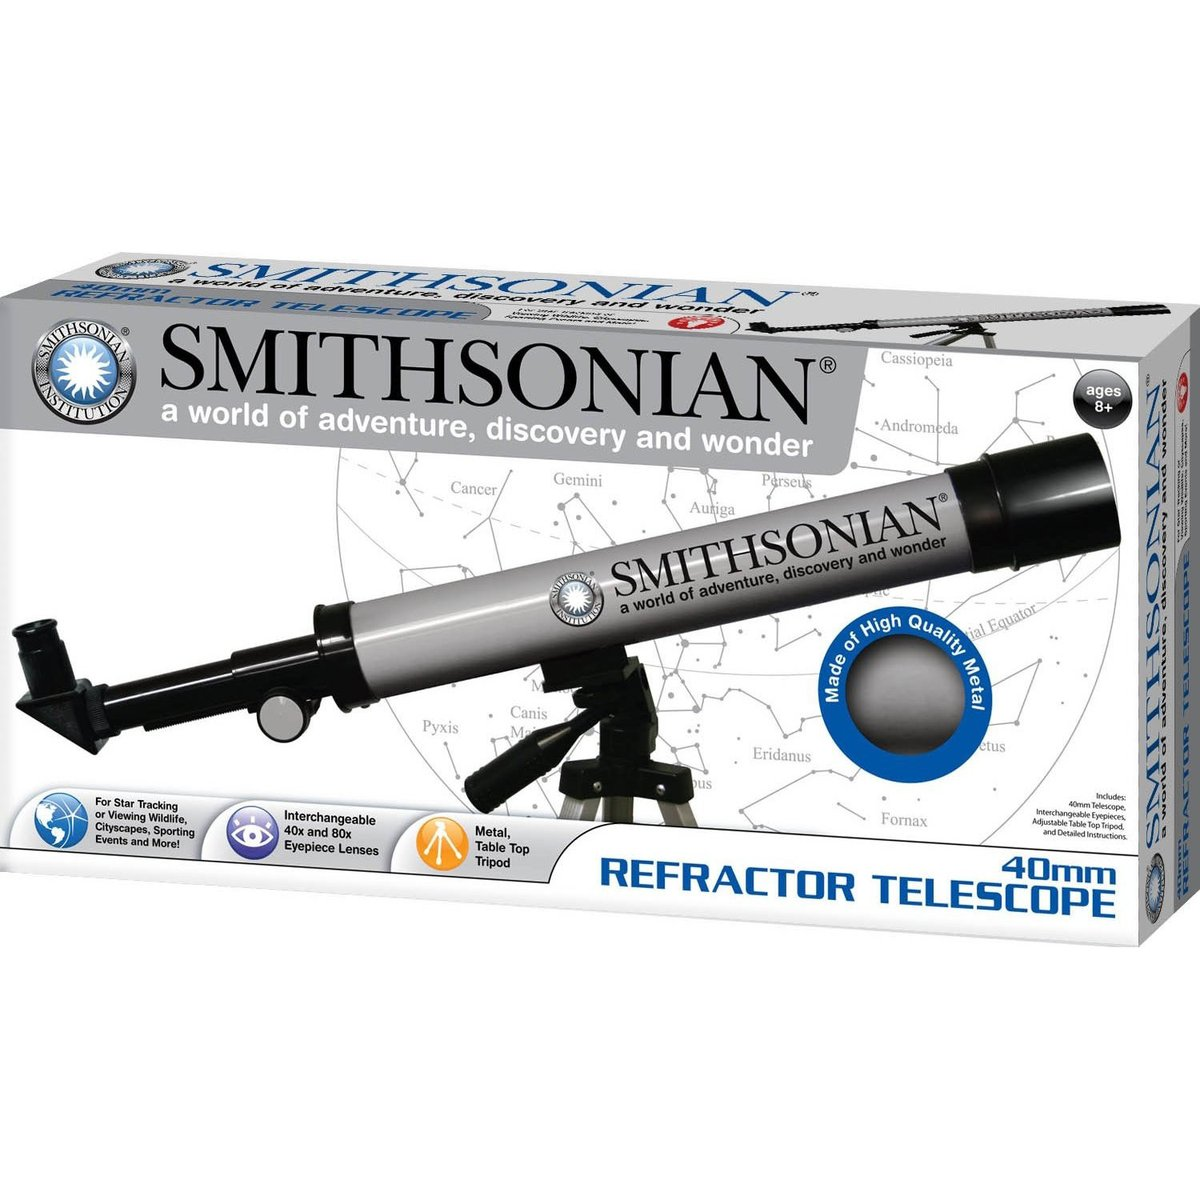 Smithsonian Refractor Telescope With Tripod by